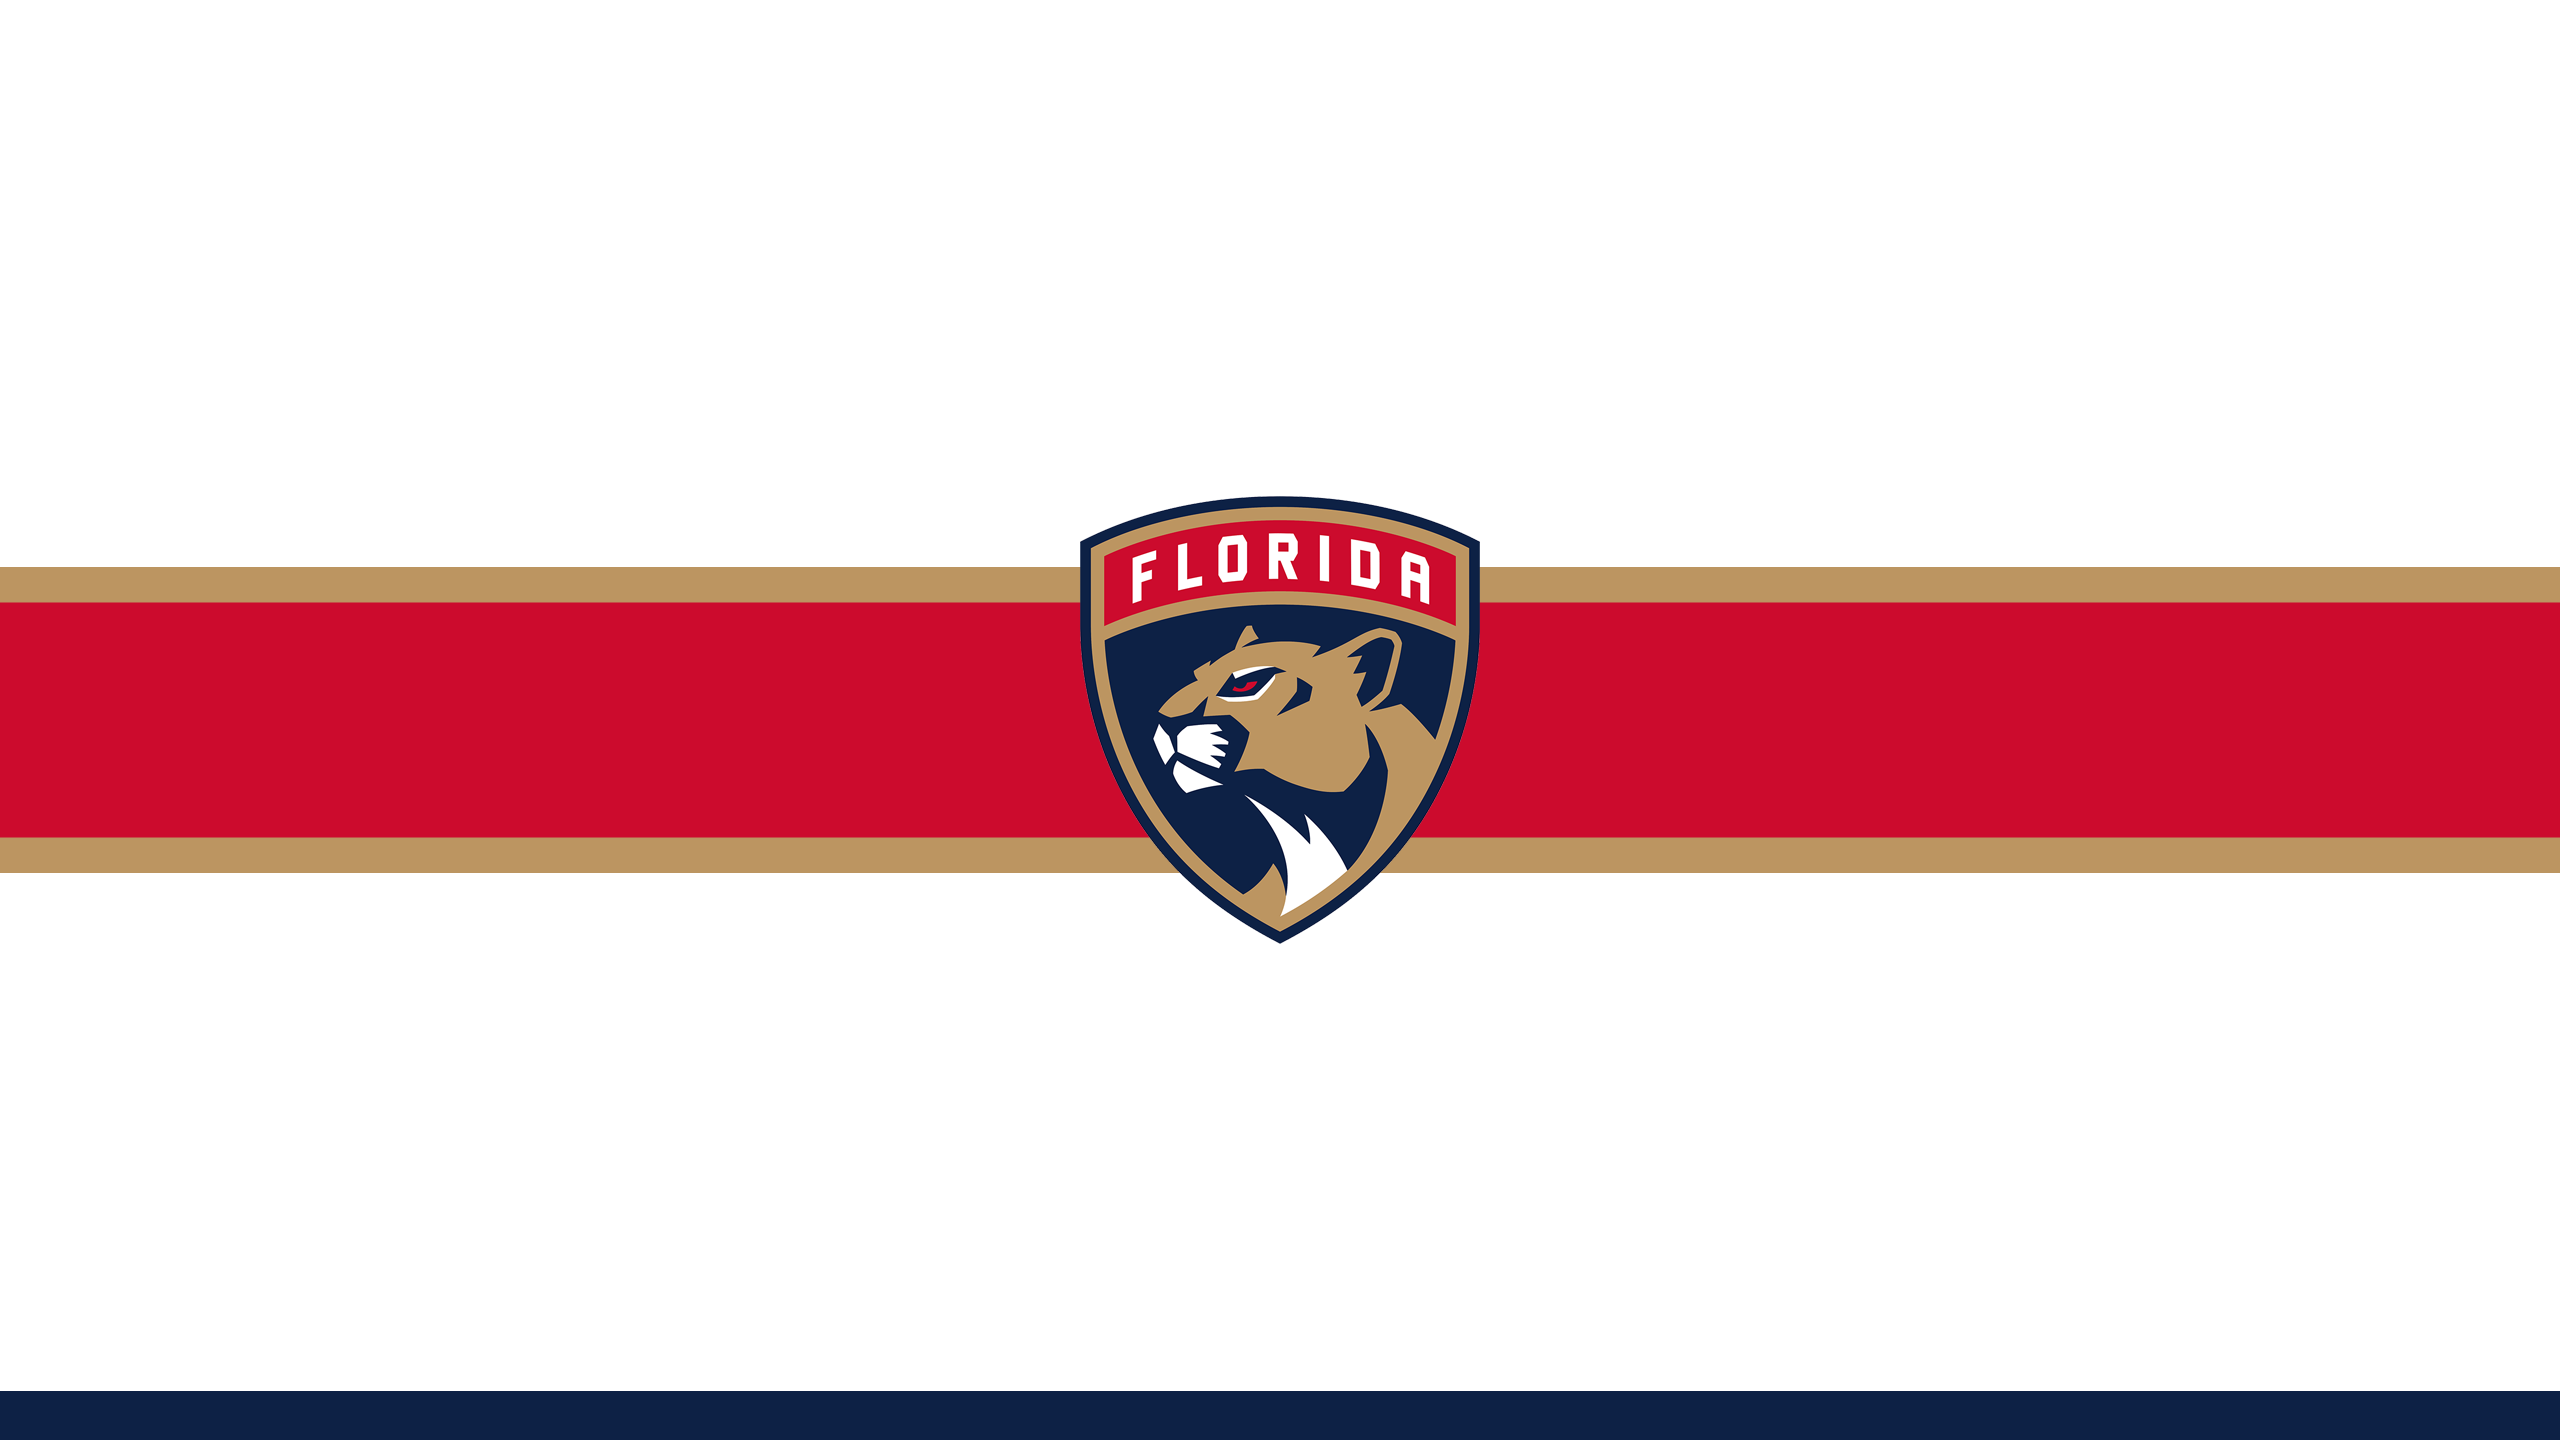 Florida Panthers (Away)